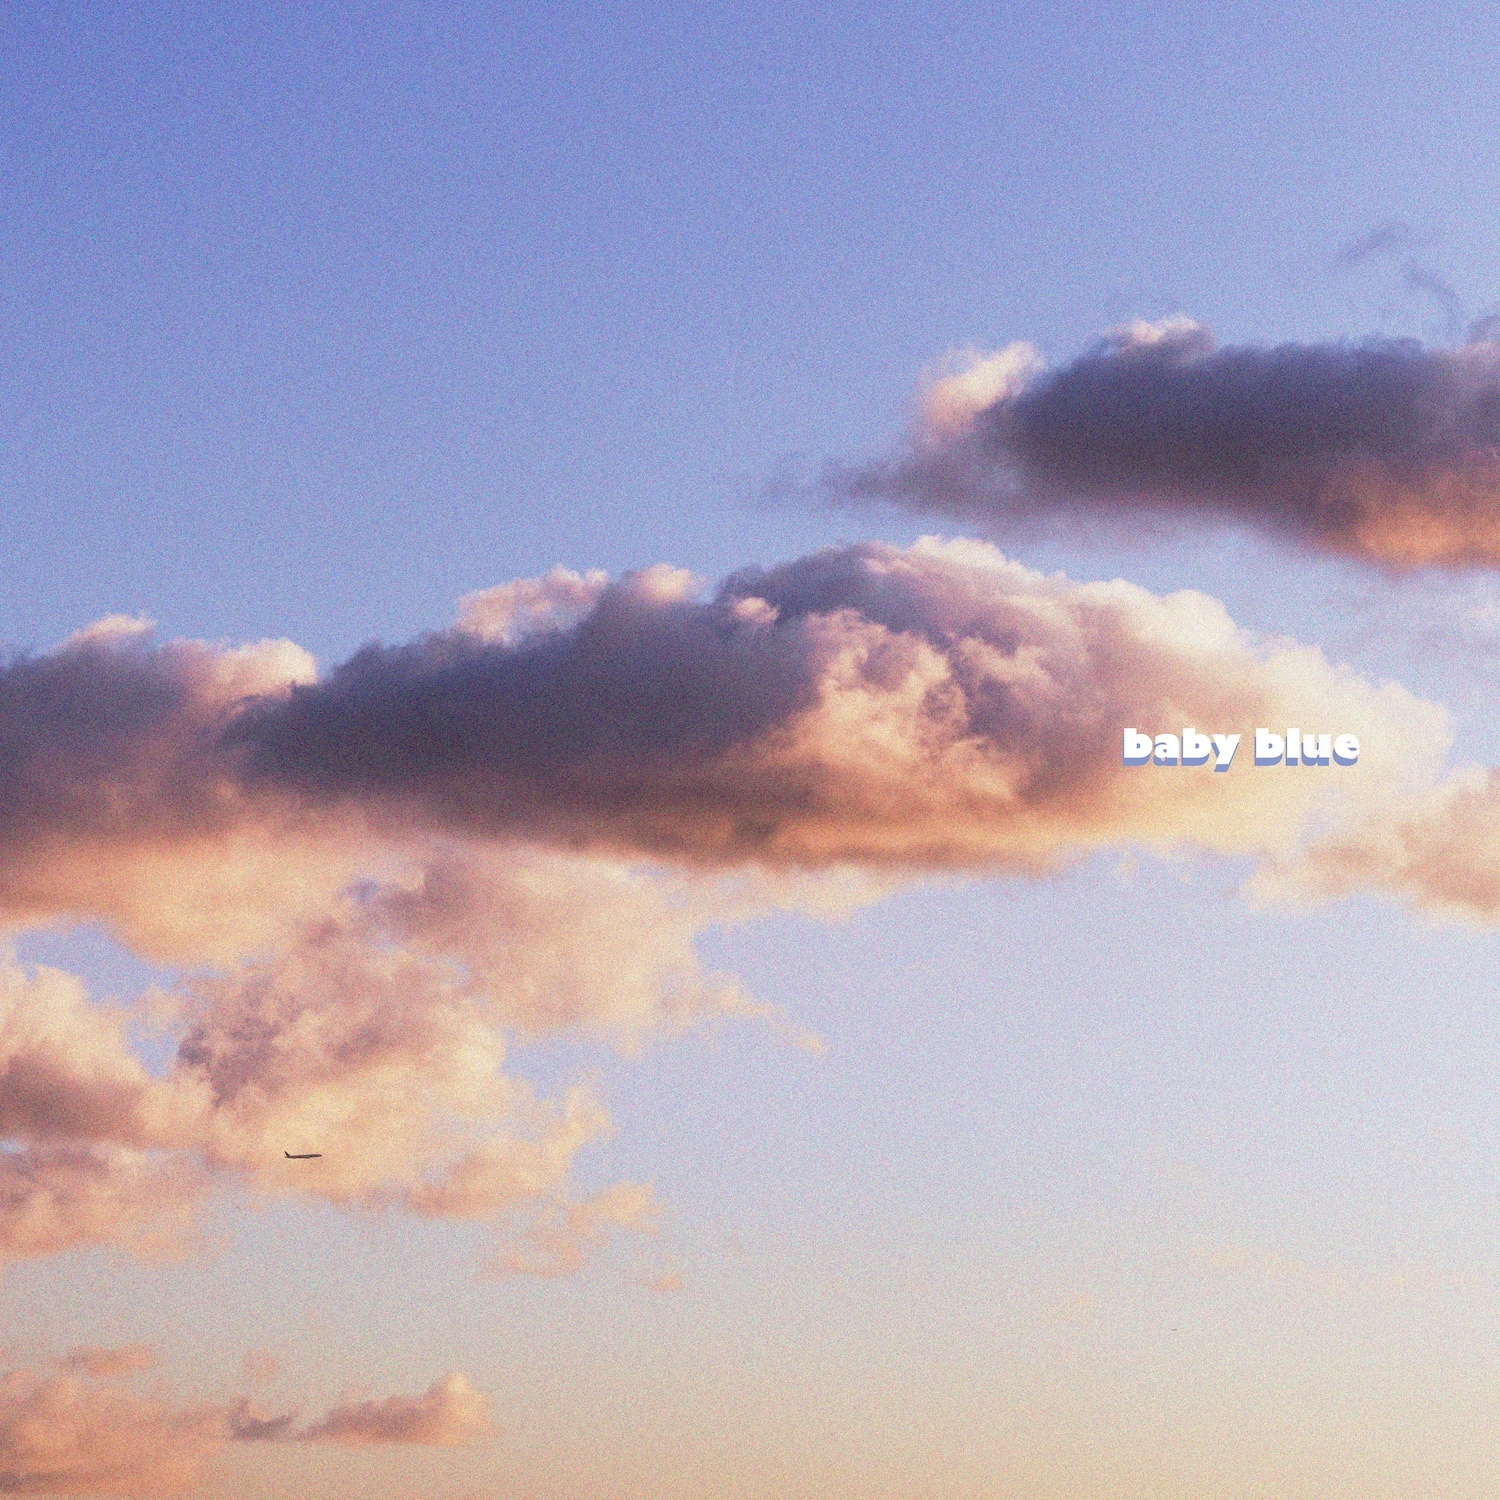 Baby blue artwork idea soundcloud